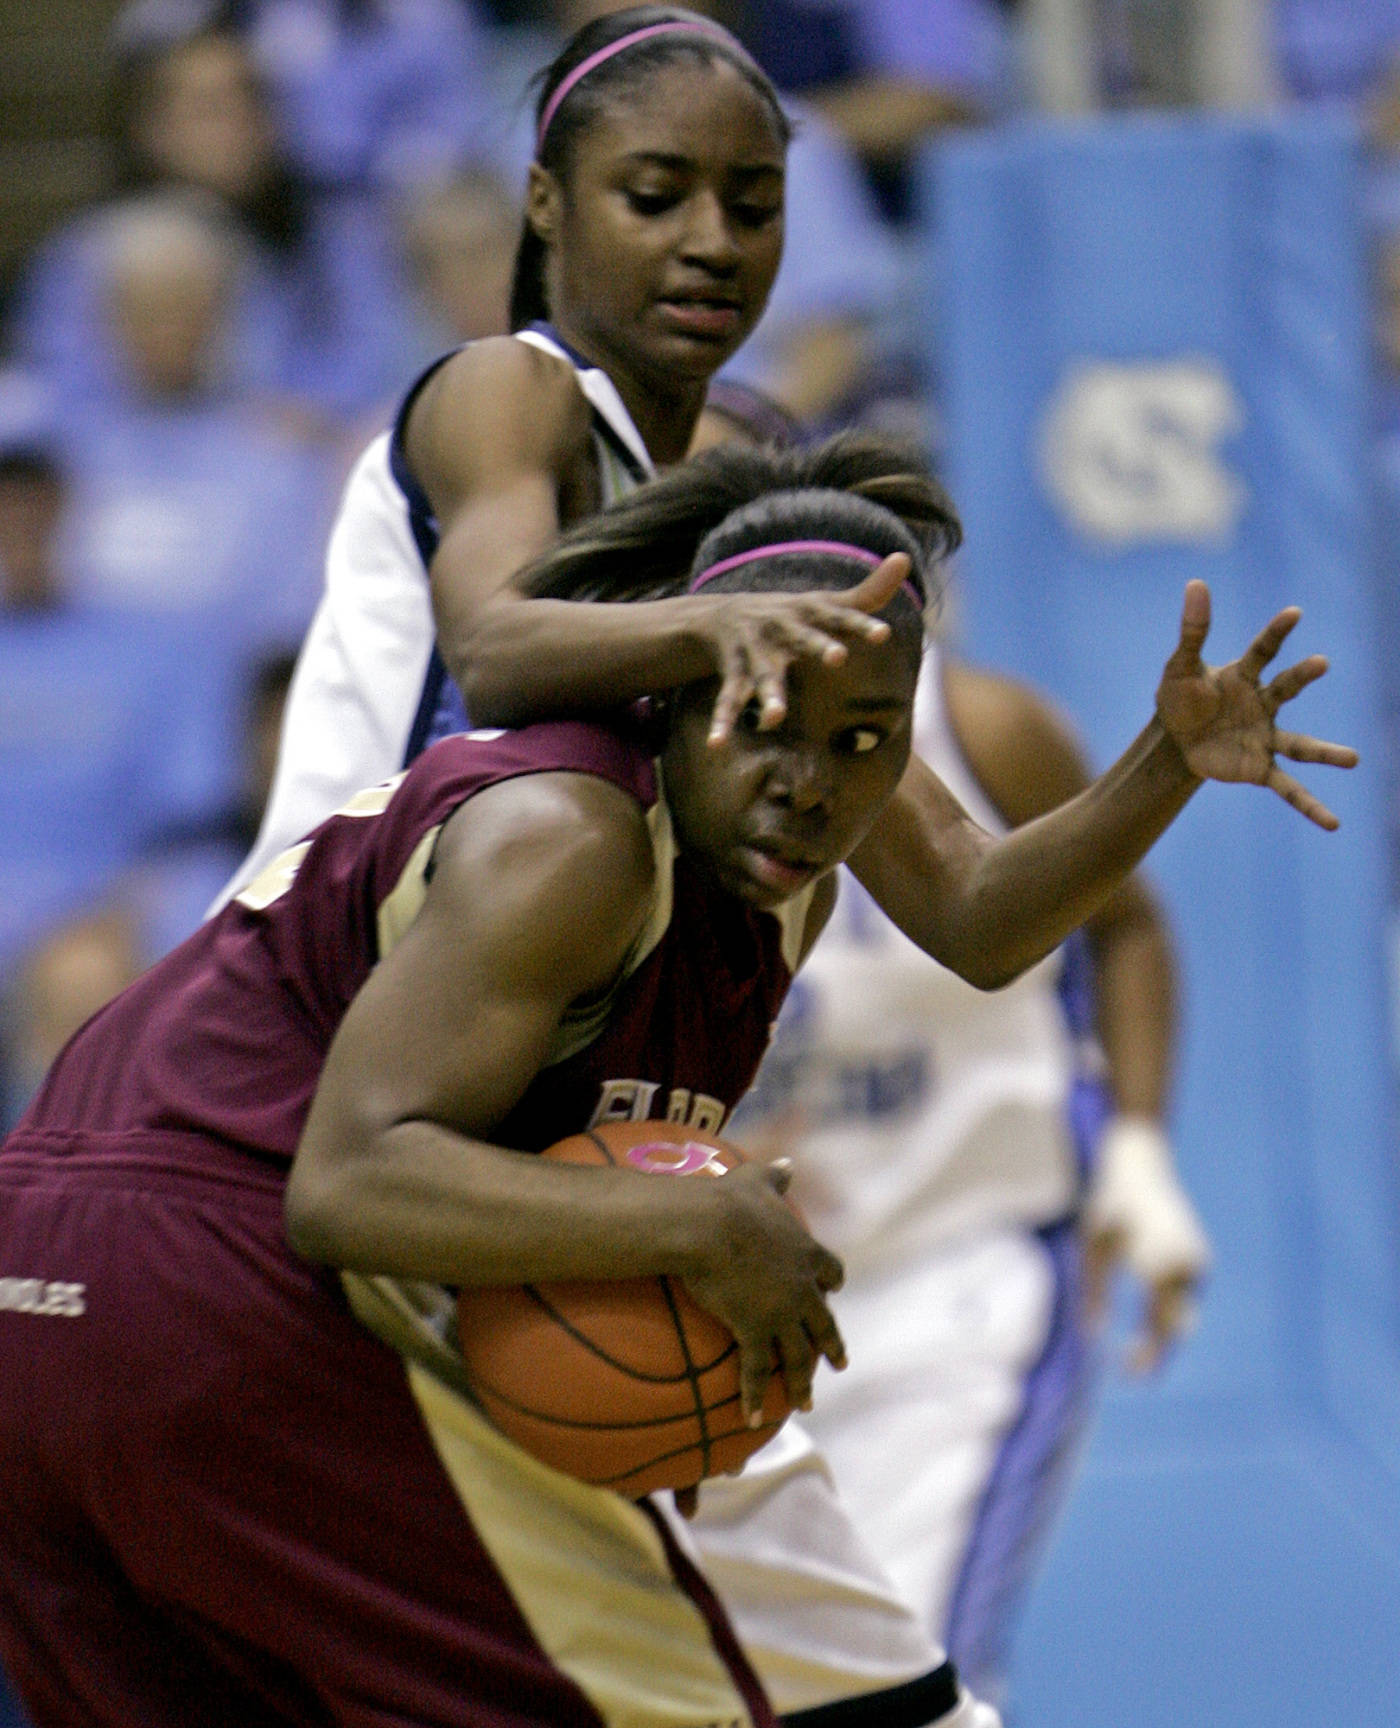 North Carolina's LaToya Pringle, rear, guards Florida State's Shante Williams during the first half of a college basketball game in Chapel Hill, N.C., Sunday, Feb. 17, 2008. (AP Photo/Gerry Broome)